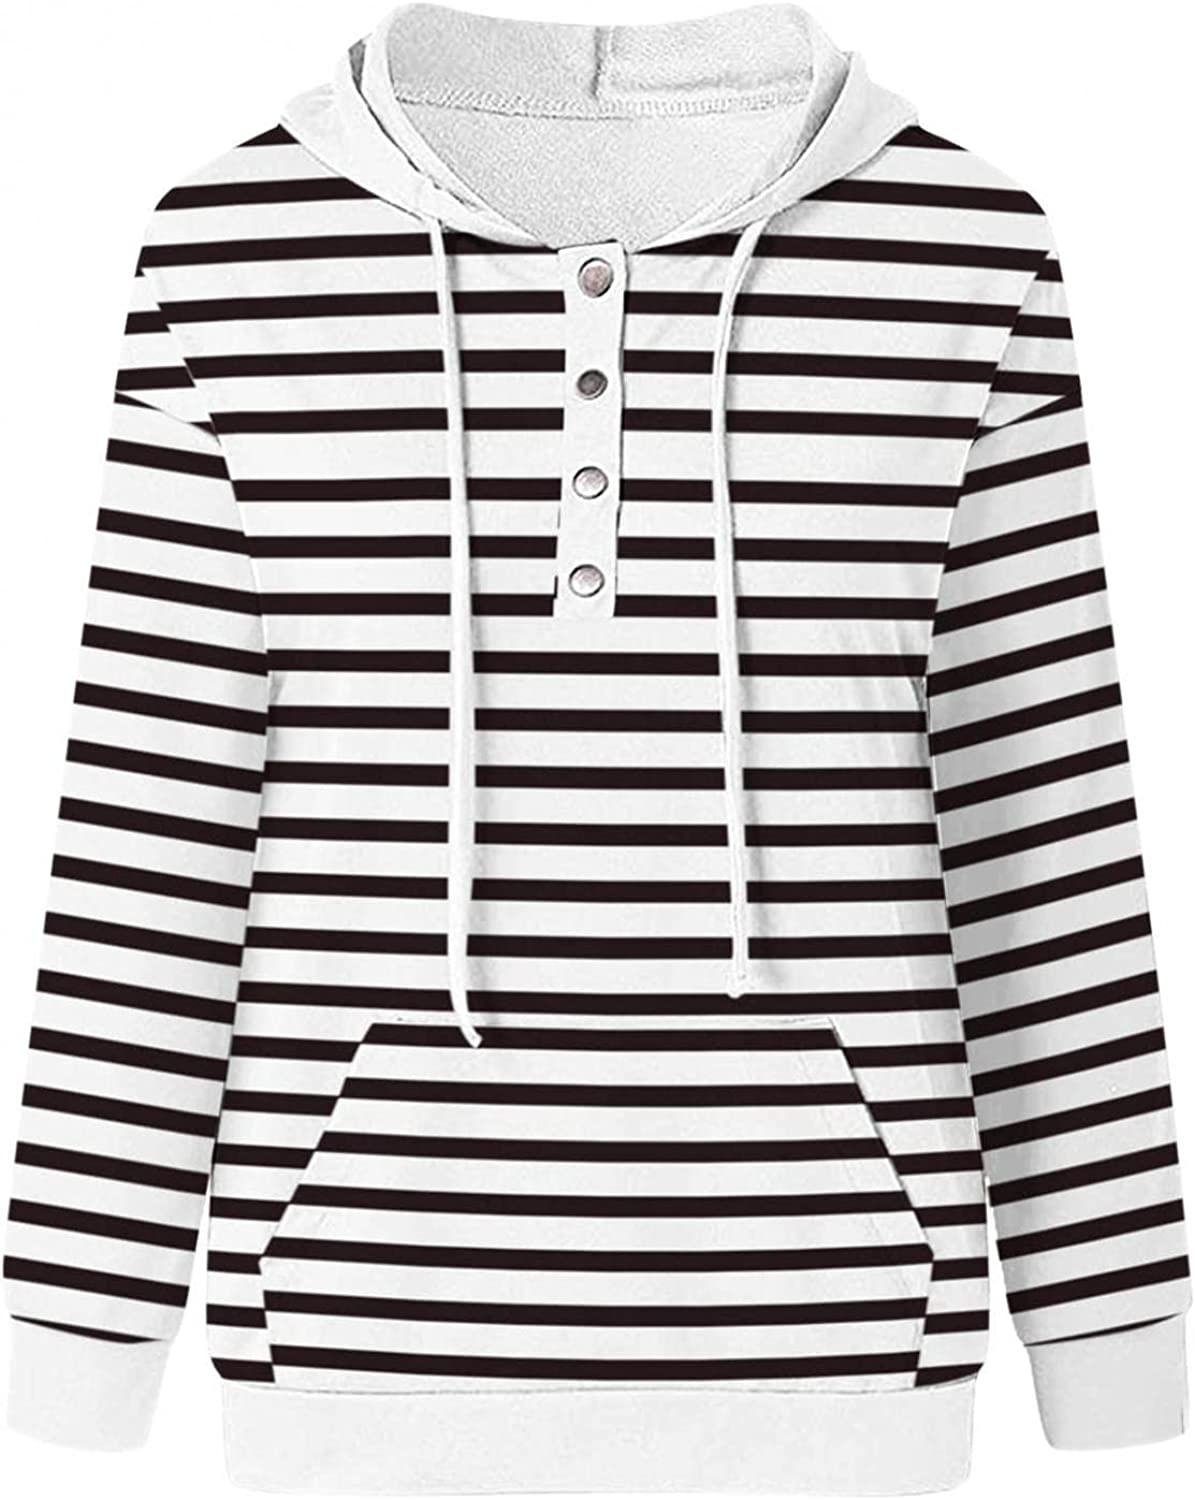 felwors Hoodies for Women, Womens Casual Pullover Hoodies Button Down Long Sleeve Color Block Sweatshirts with Pockets